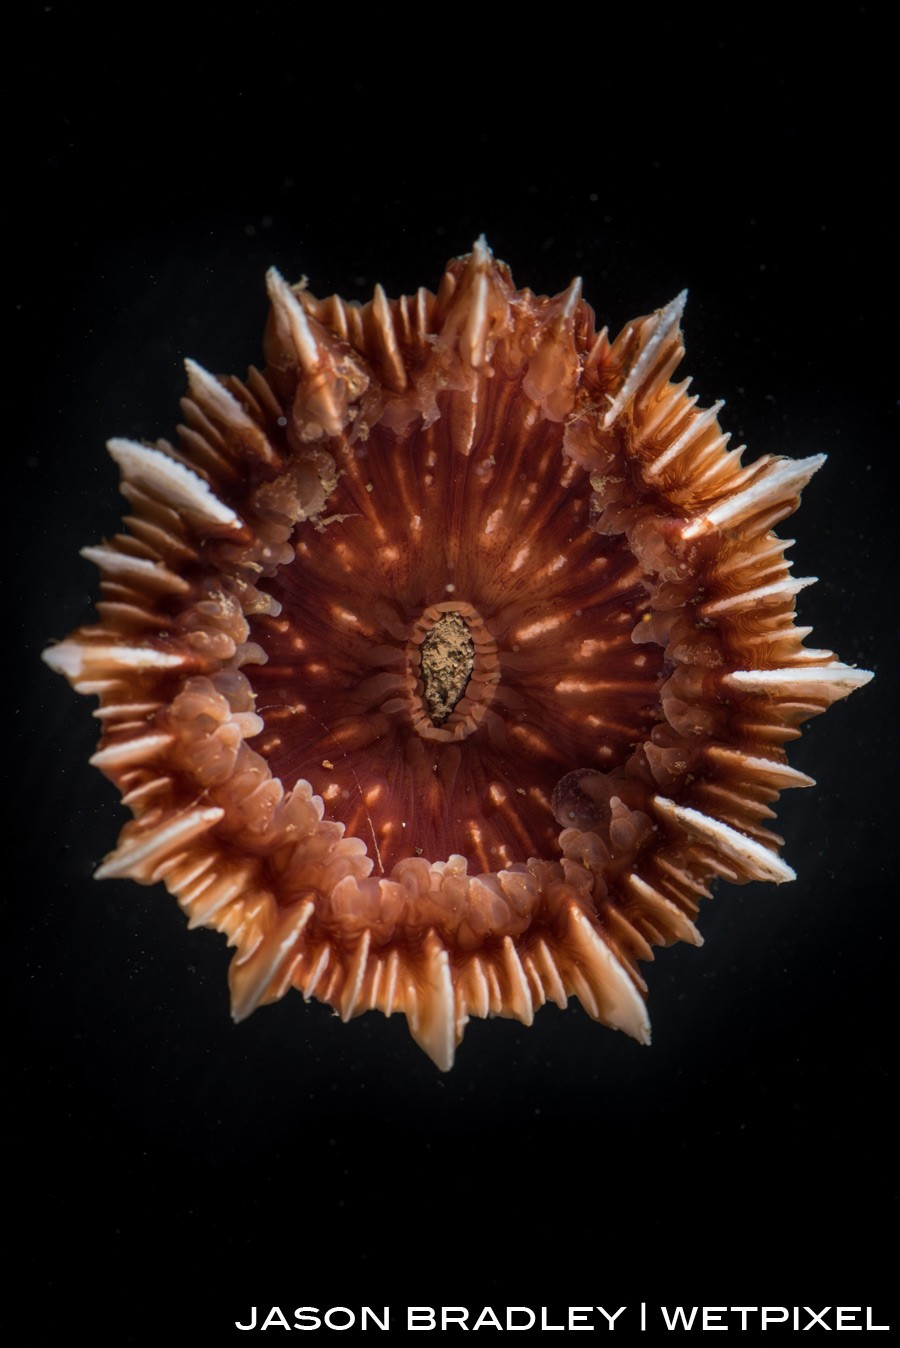 A stony coral (*Scleractinia*) recovered from 2000 meters below.